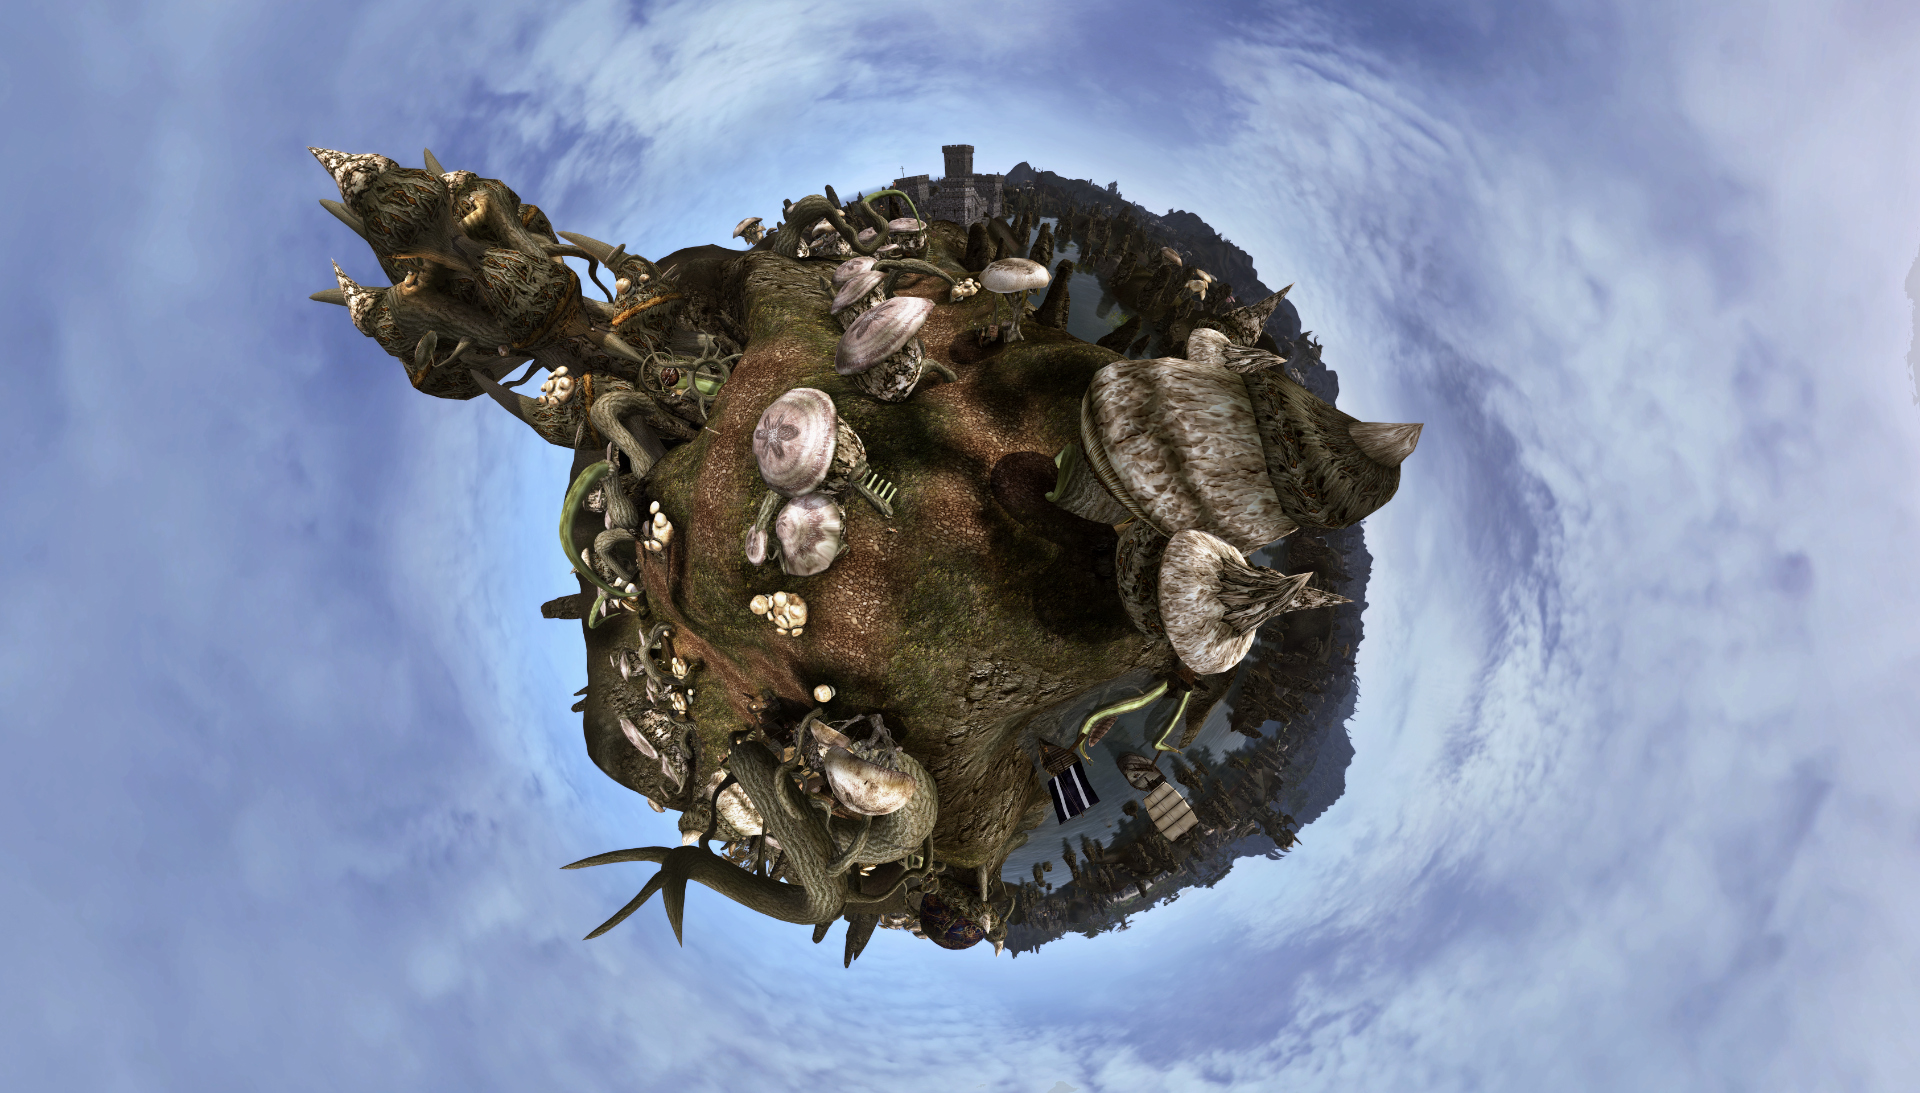 Sadrith Mora on little planet